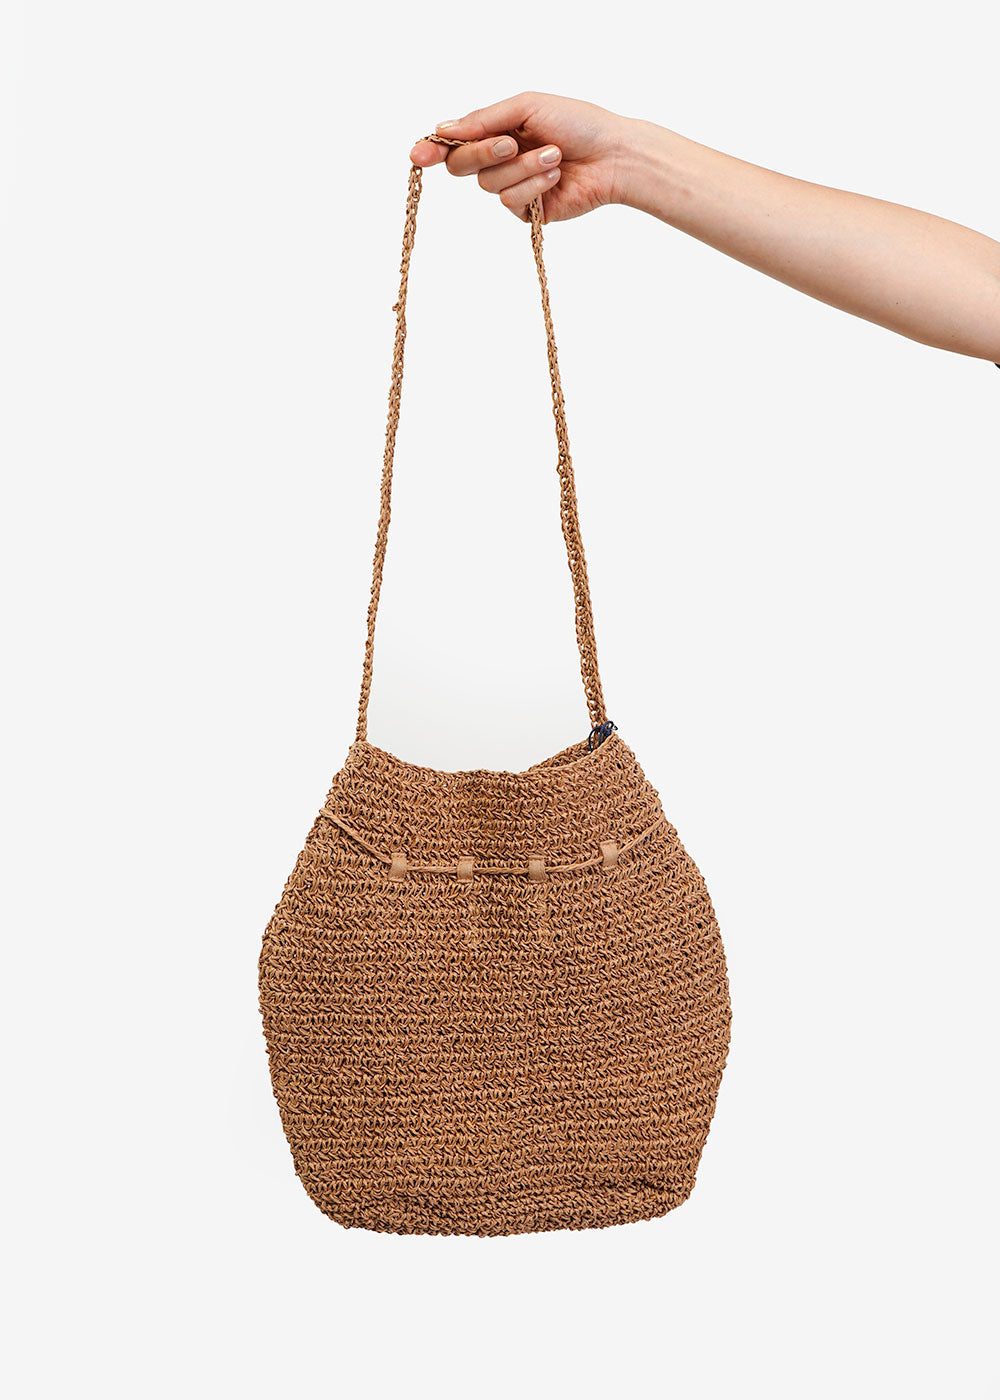 Paloma Wool Vase Bag — Shop sustainable fashion and slow fashion at New Classics Studios